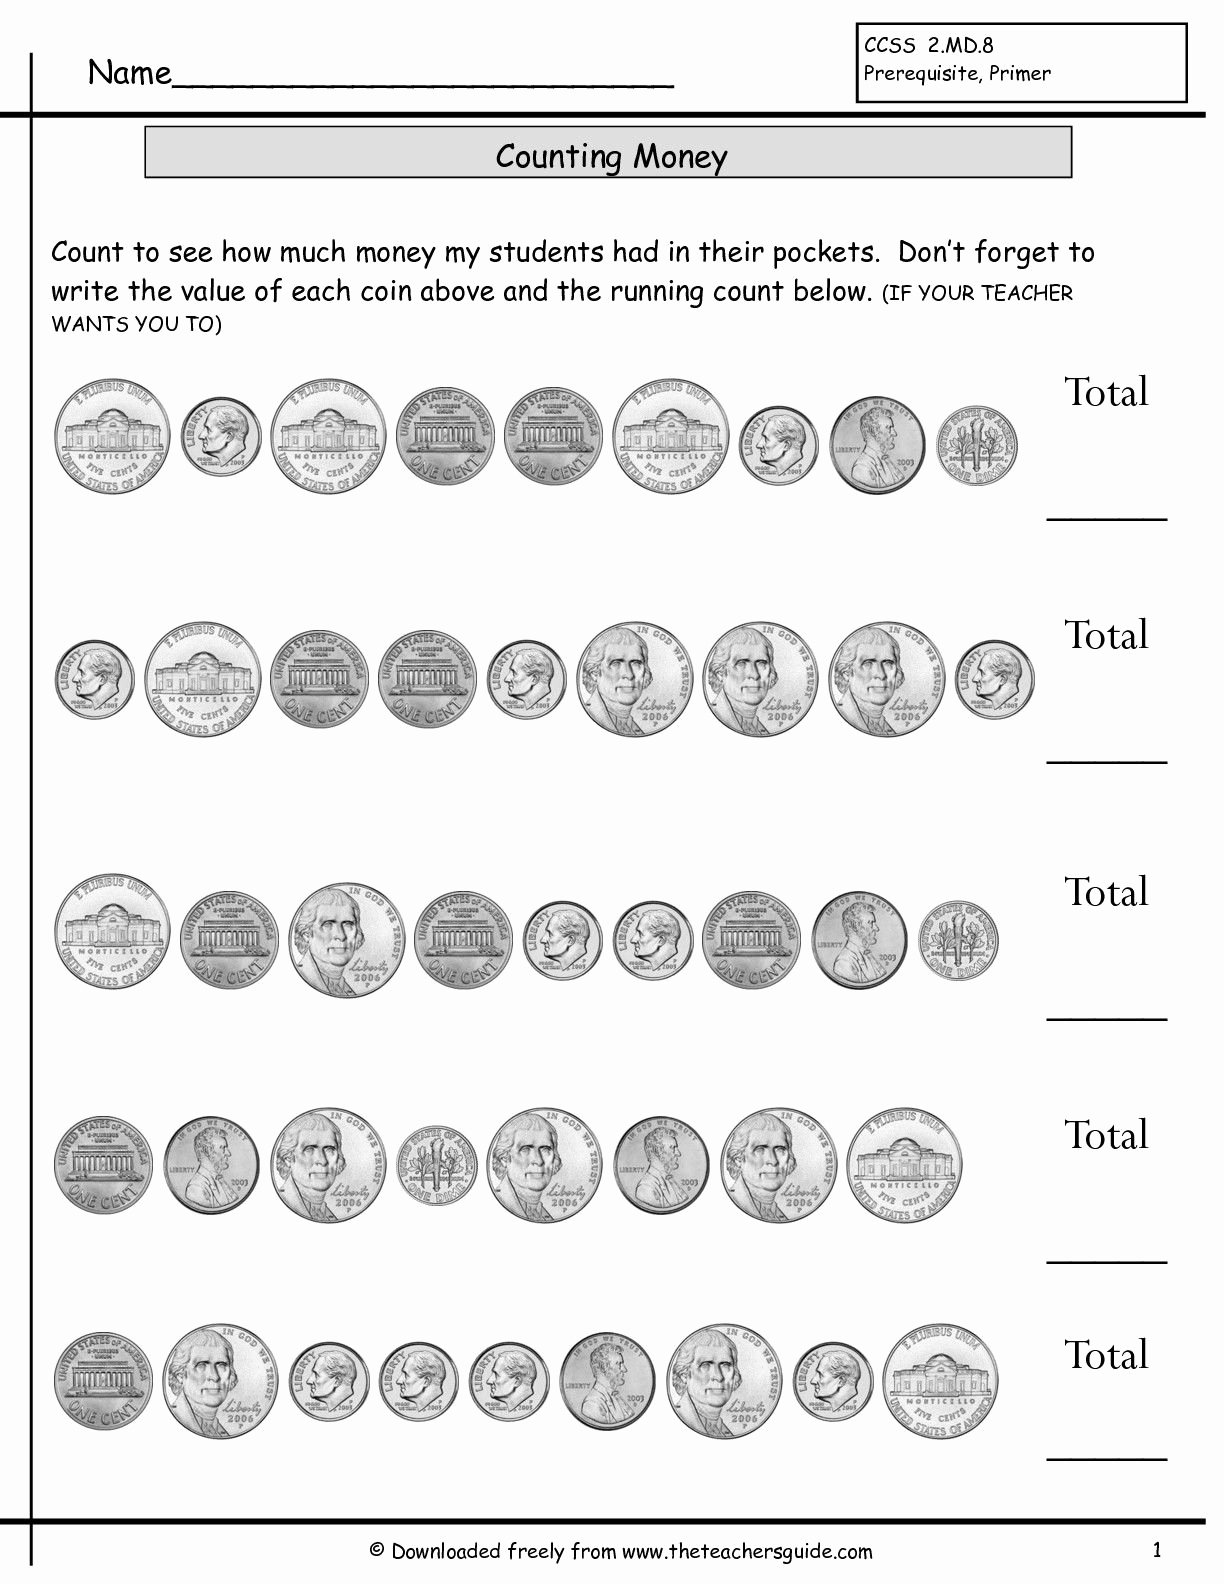 Counting Coins Worksheets First Grade Kids Counting Coins Worksheets From the Teacher S Guide